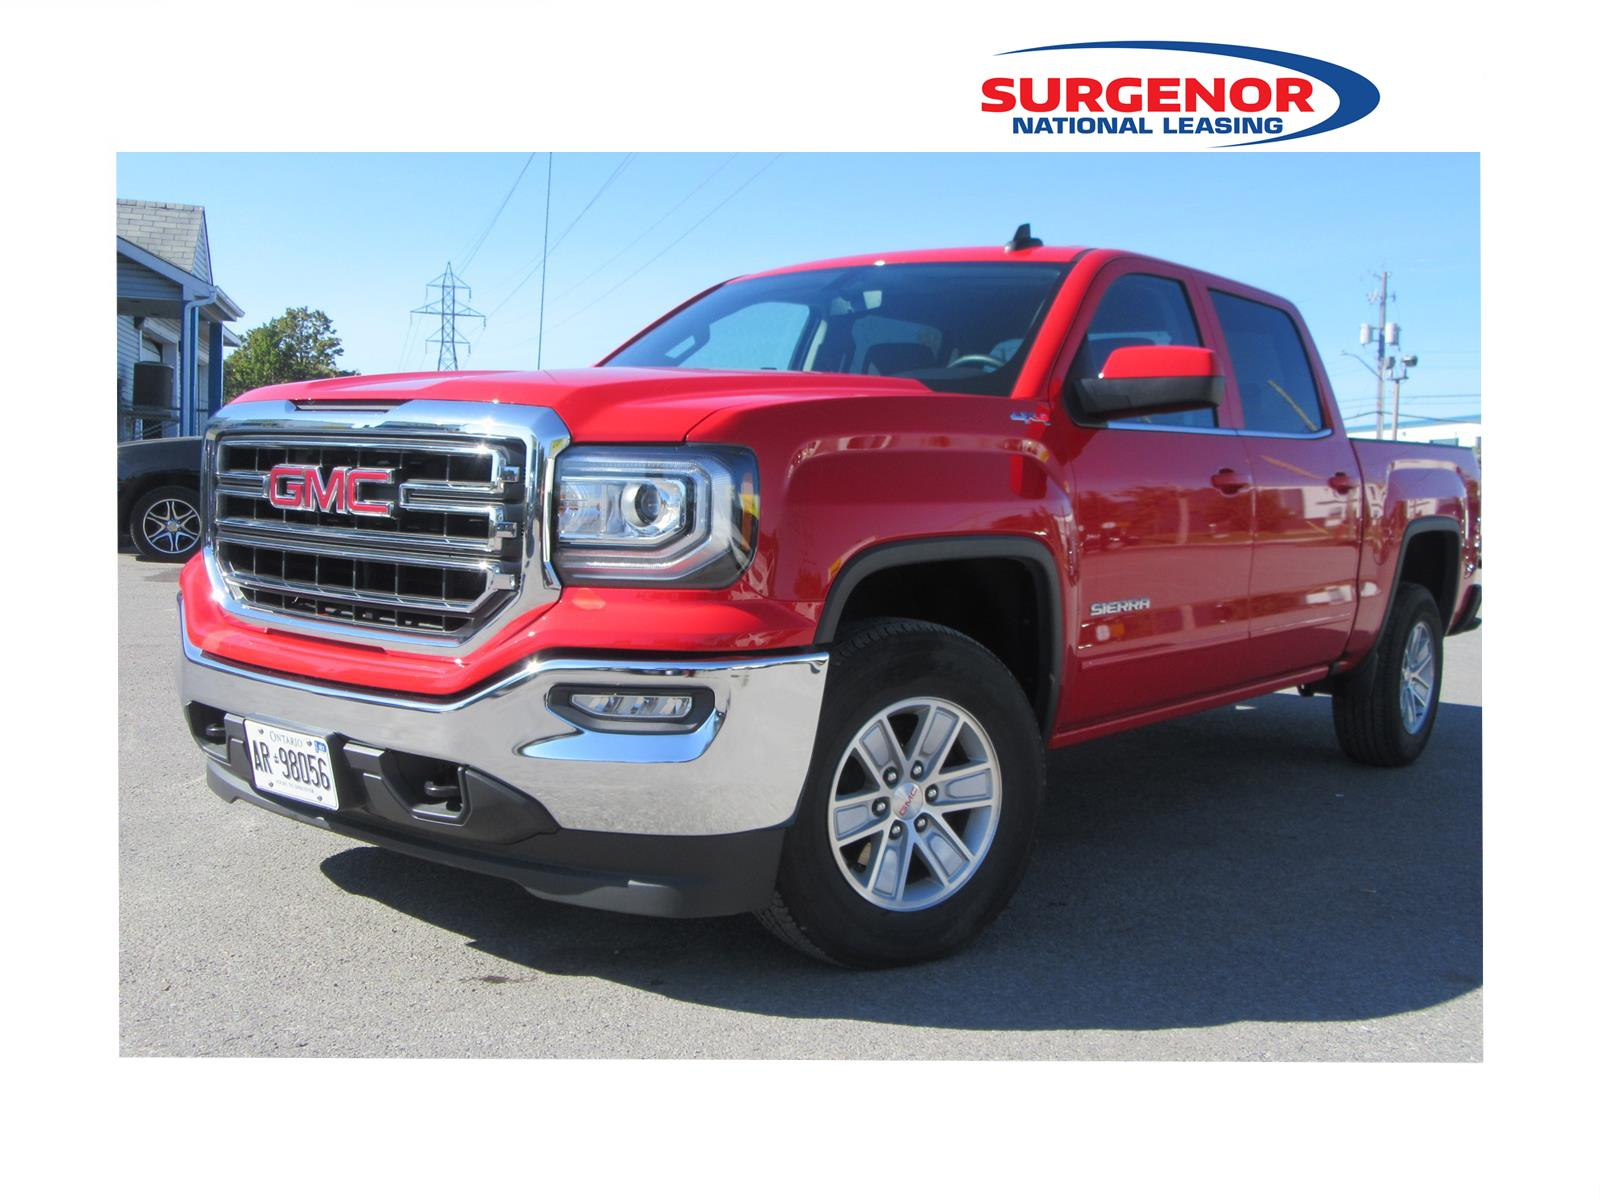 quirk in sierra buick lease nh main best new gmc offers near manchester vehicles prices and